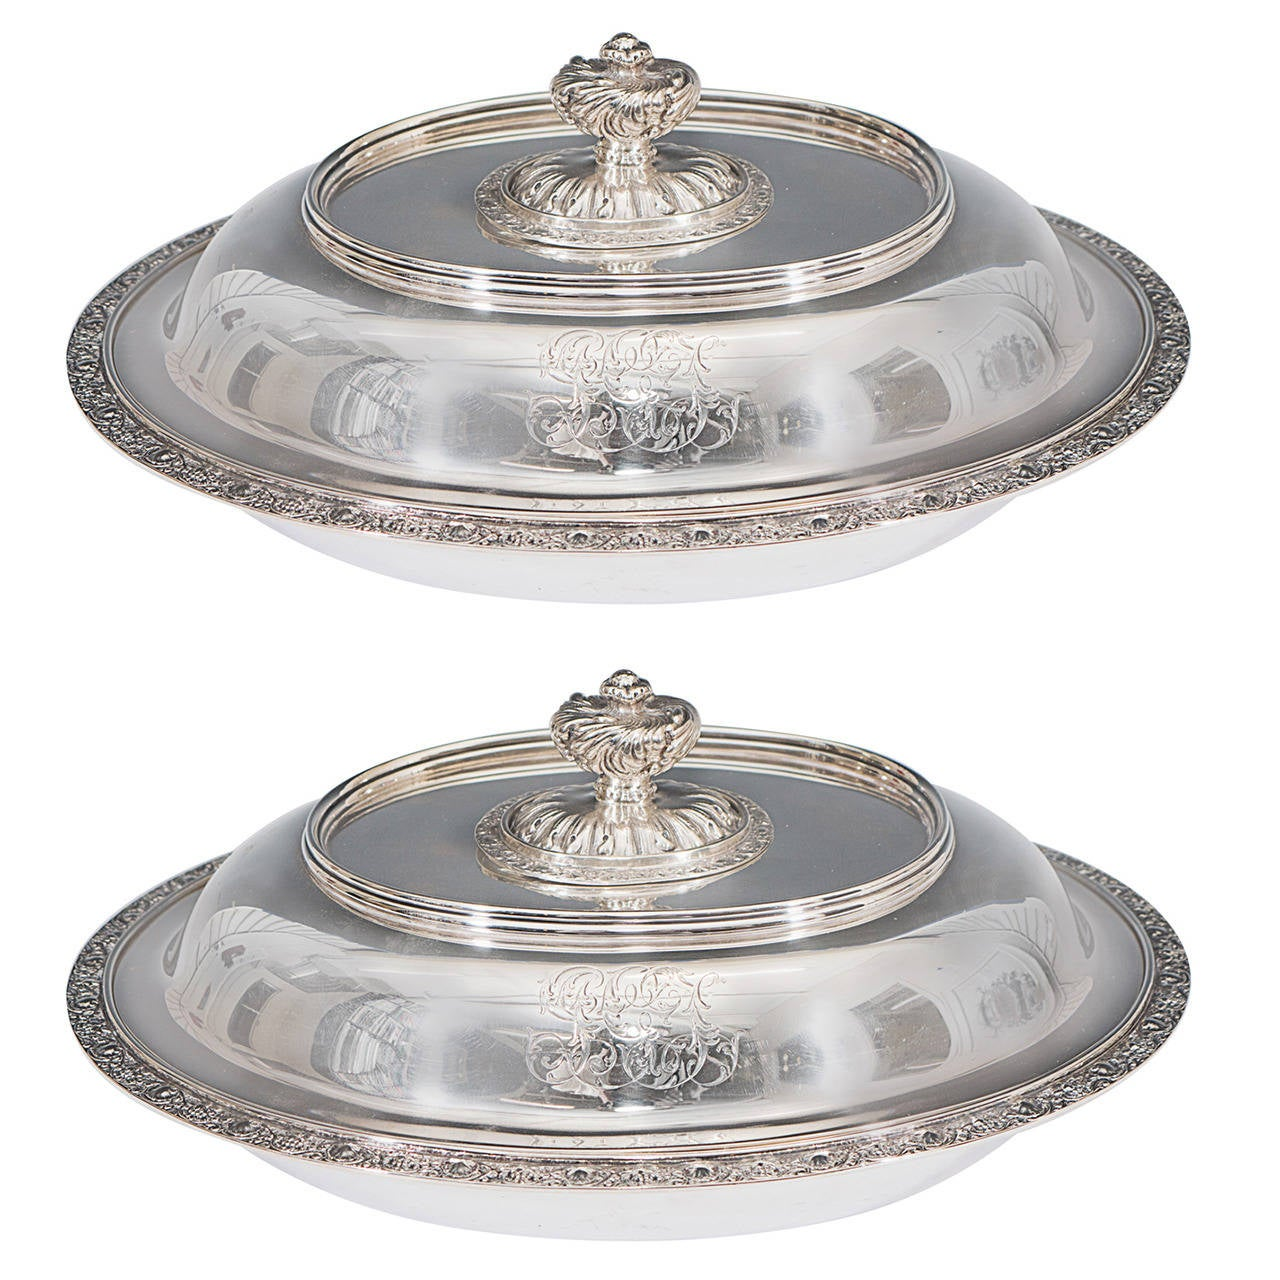 Pair of Tiffany & Co. Makers Sterling Silver Covered Vegetable Dishes